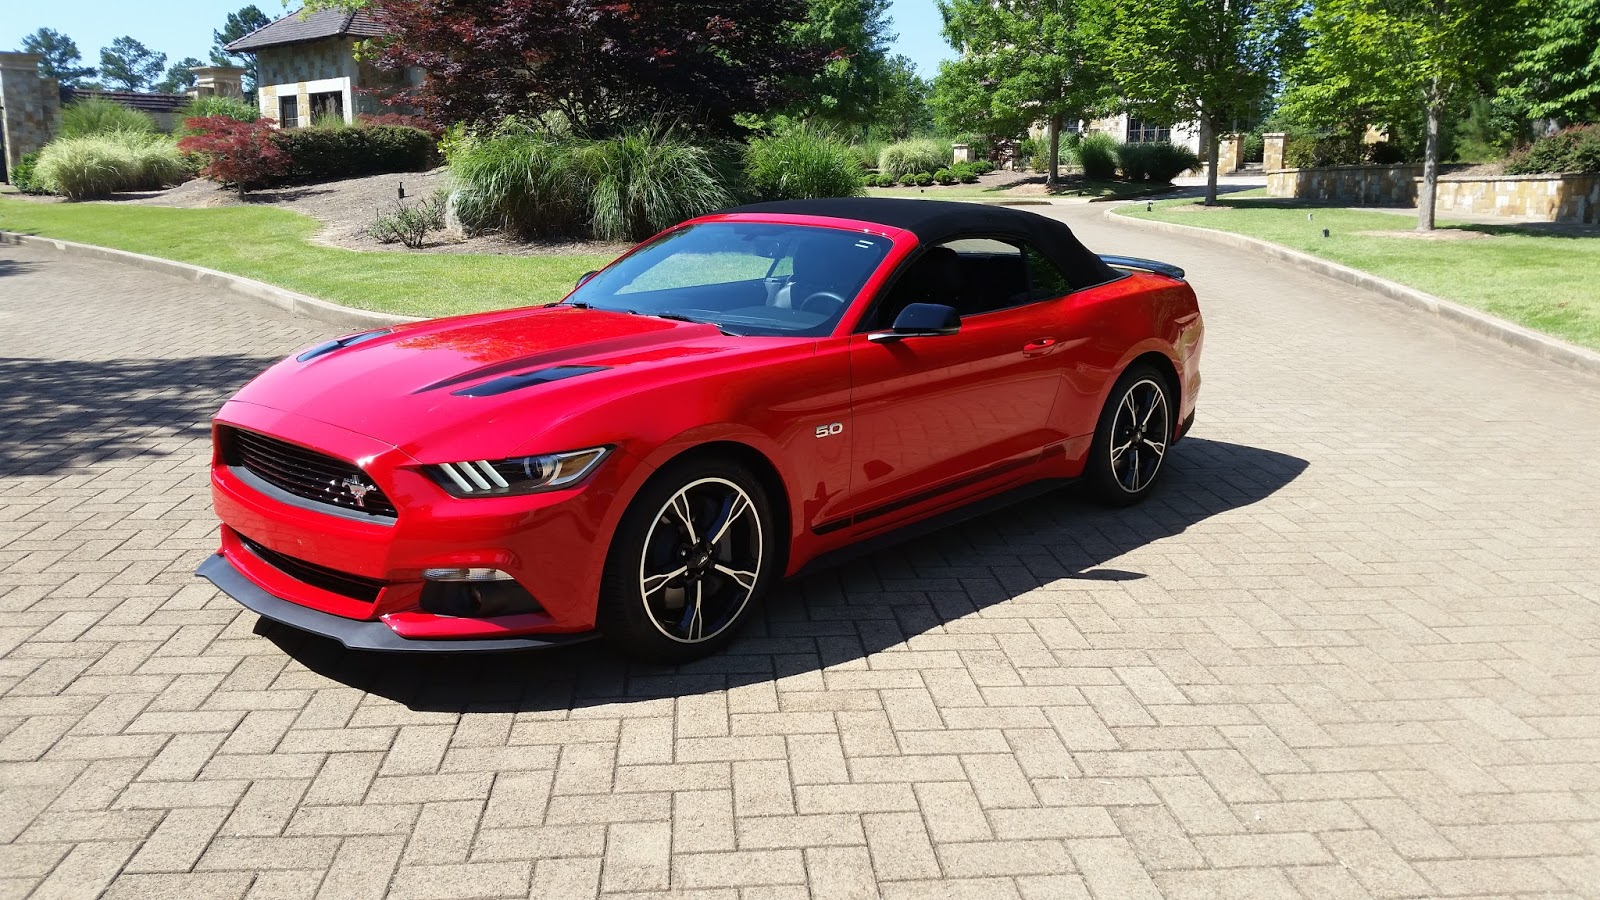 2016 Ford Mustang Convertible Gt Premium A High Ed Cool And Y Drop Top